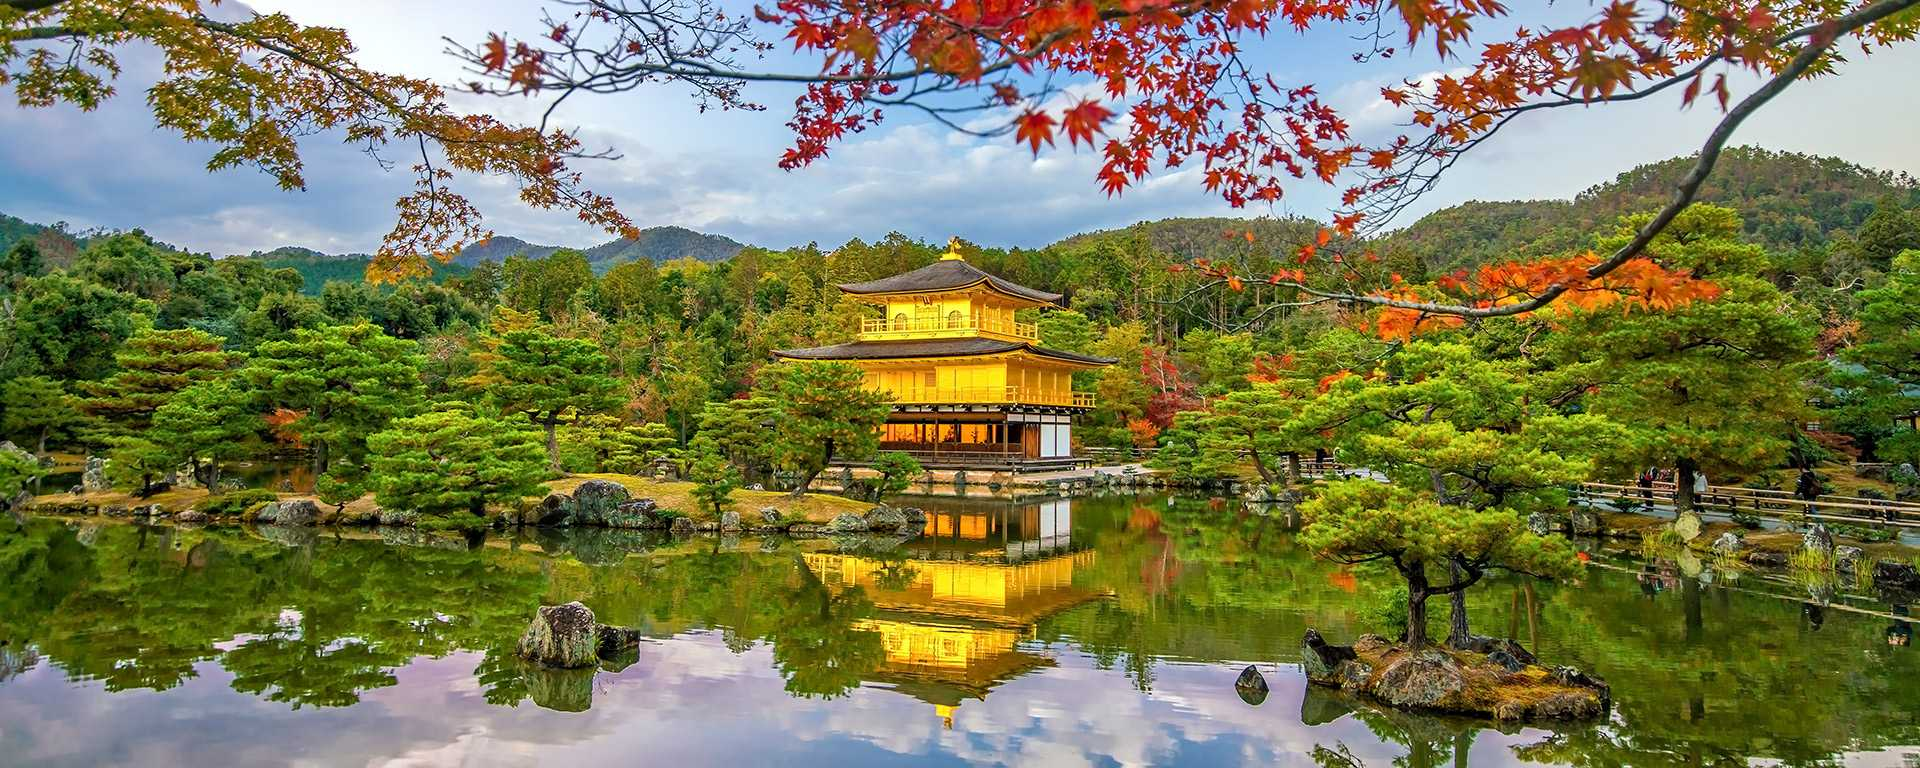 Kyoto-Golden-Pavilion-of-Kinkaku-ji-temple